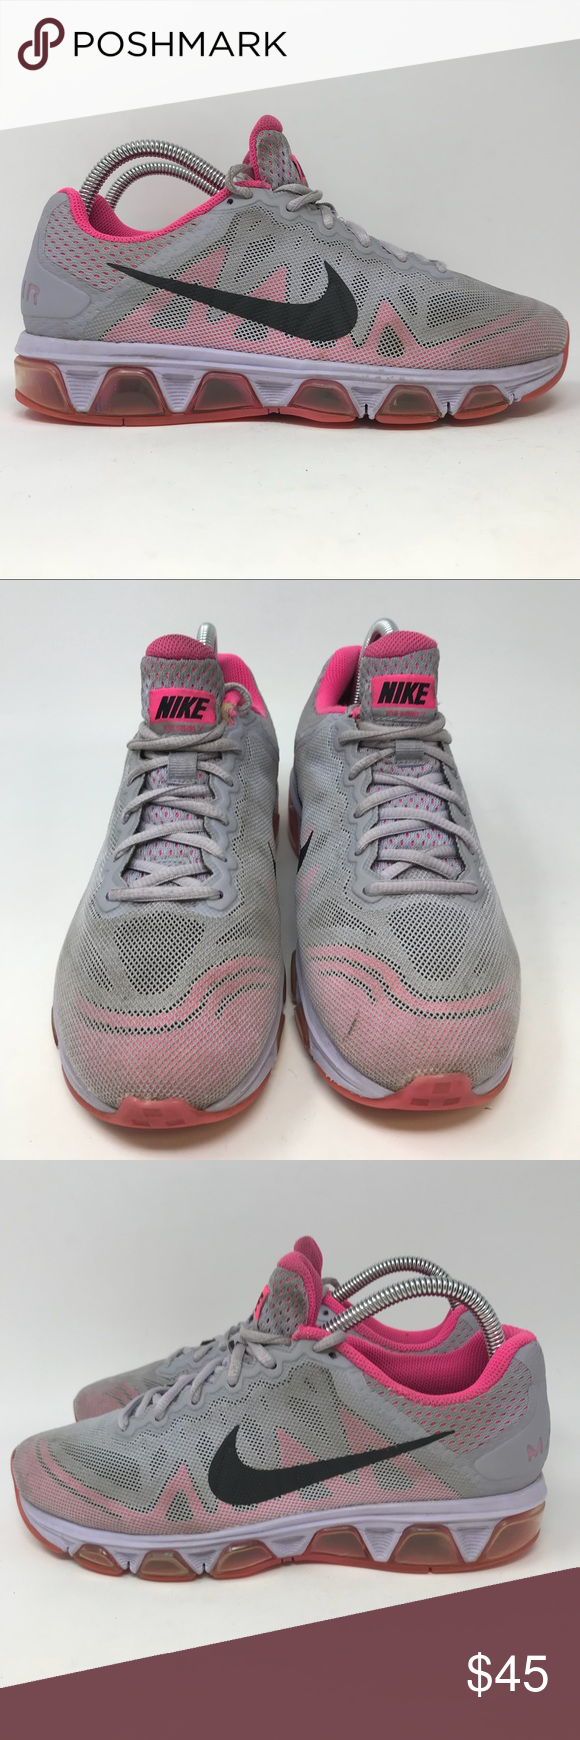 reputable site 41d7d 42ba0 Nike Air Max Tailwind 7 Womens 8.5 K5 Nike Air Max Tailwind 7 Running Shoes  Sneakers Grey Womens Sz 8.5 683635 K5 Shoes are in good used condition Next  day ...